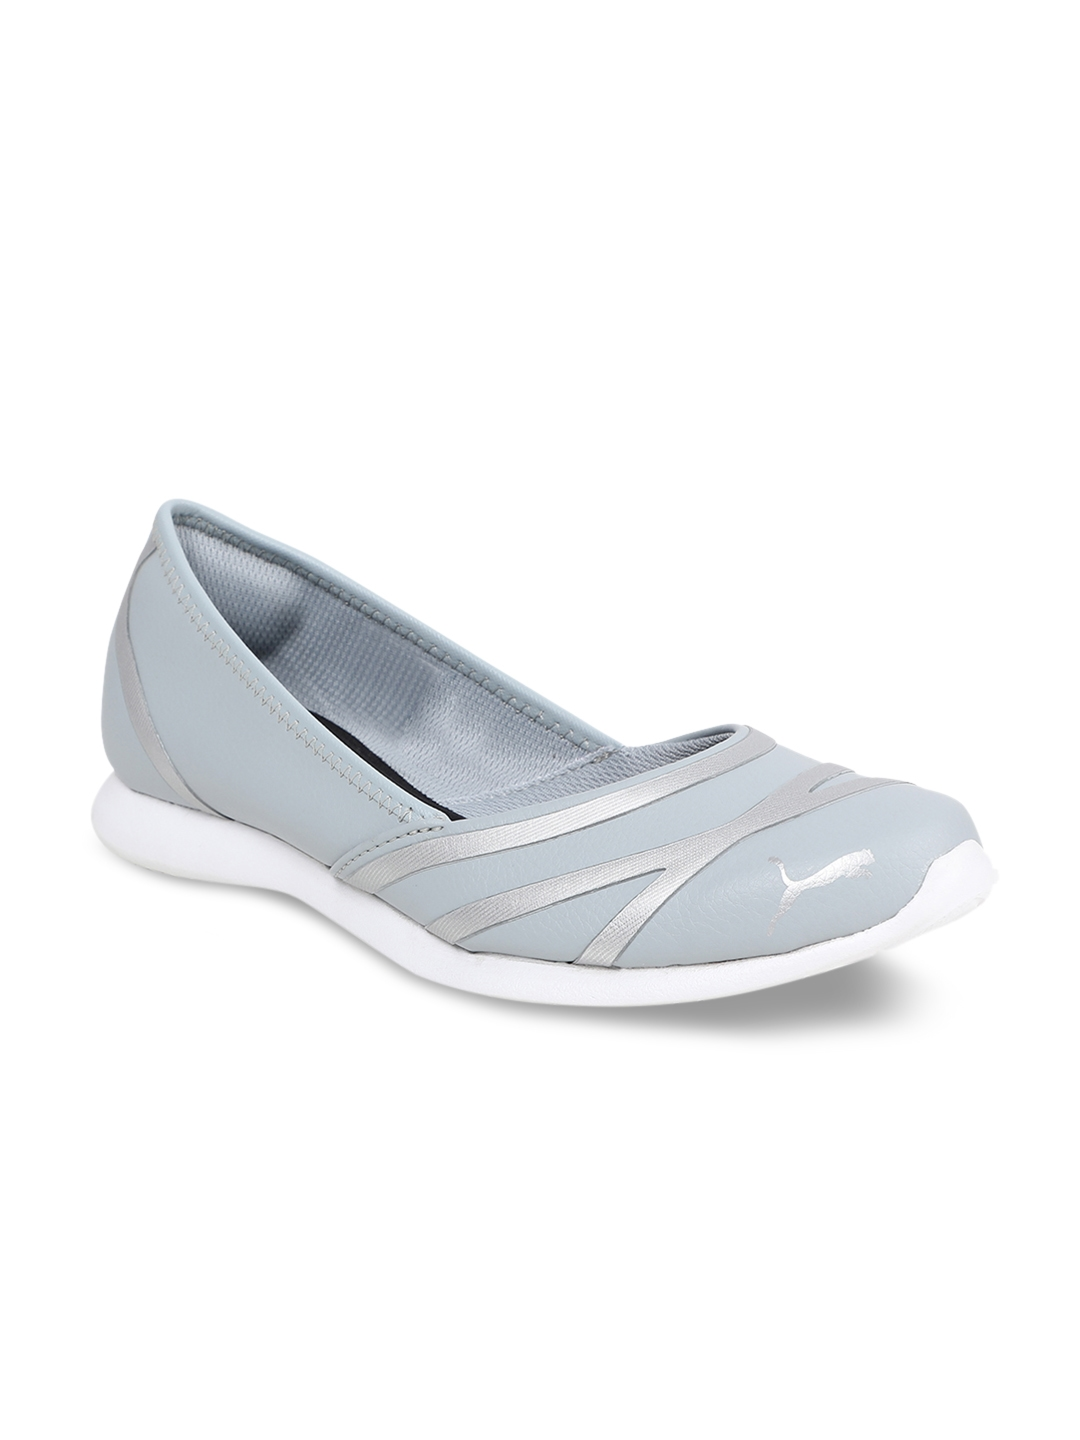 fa4802dc8126a6 Buy Puma Vega Ballet SL IDP Women Grey Ballerinas - Flats for Women 6677164